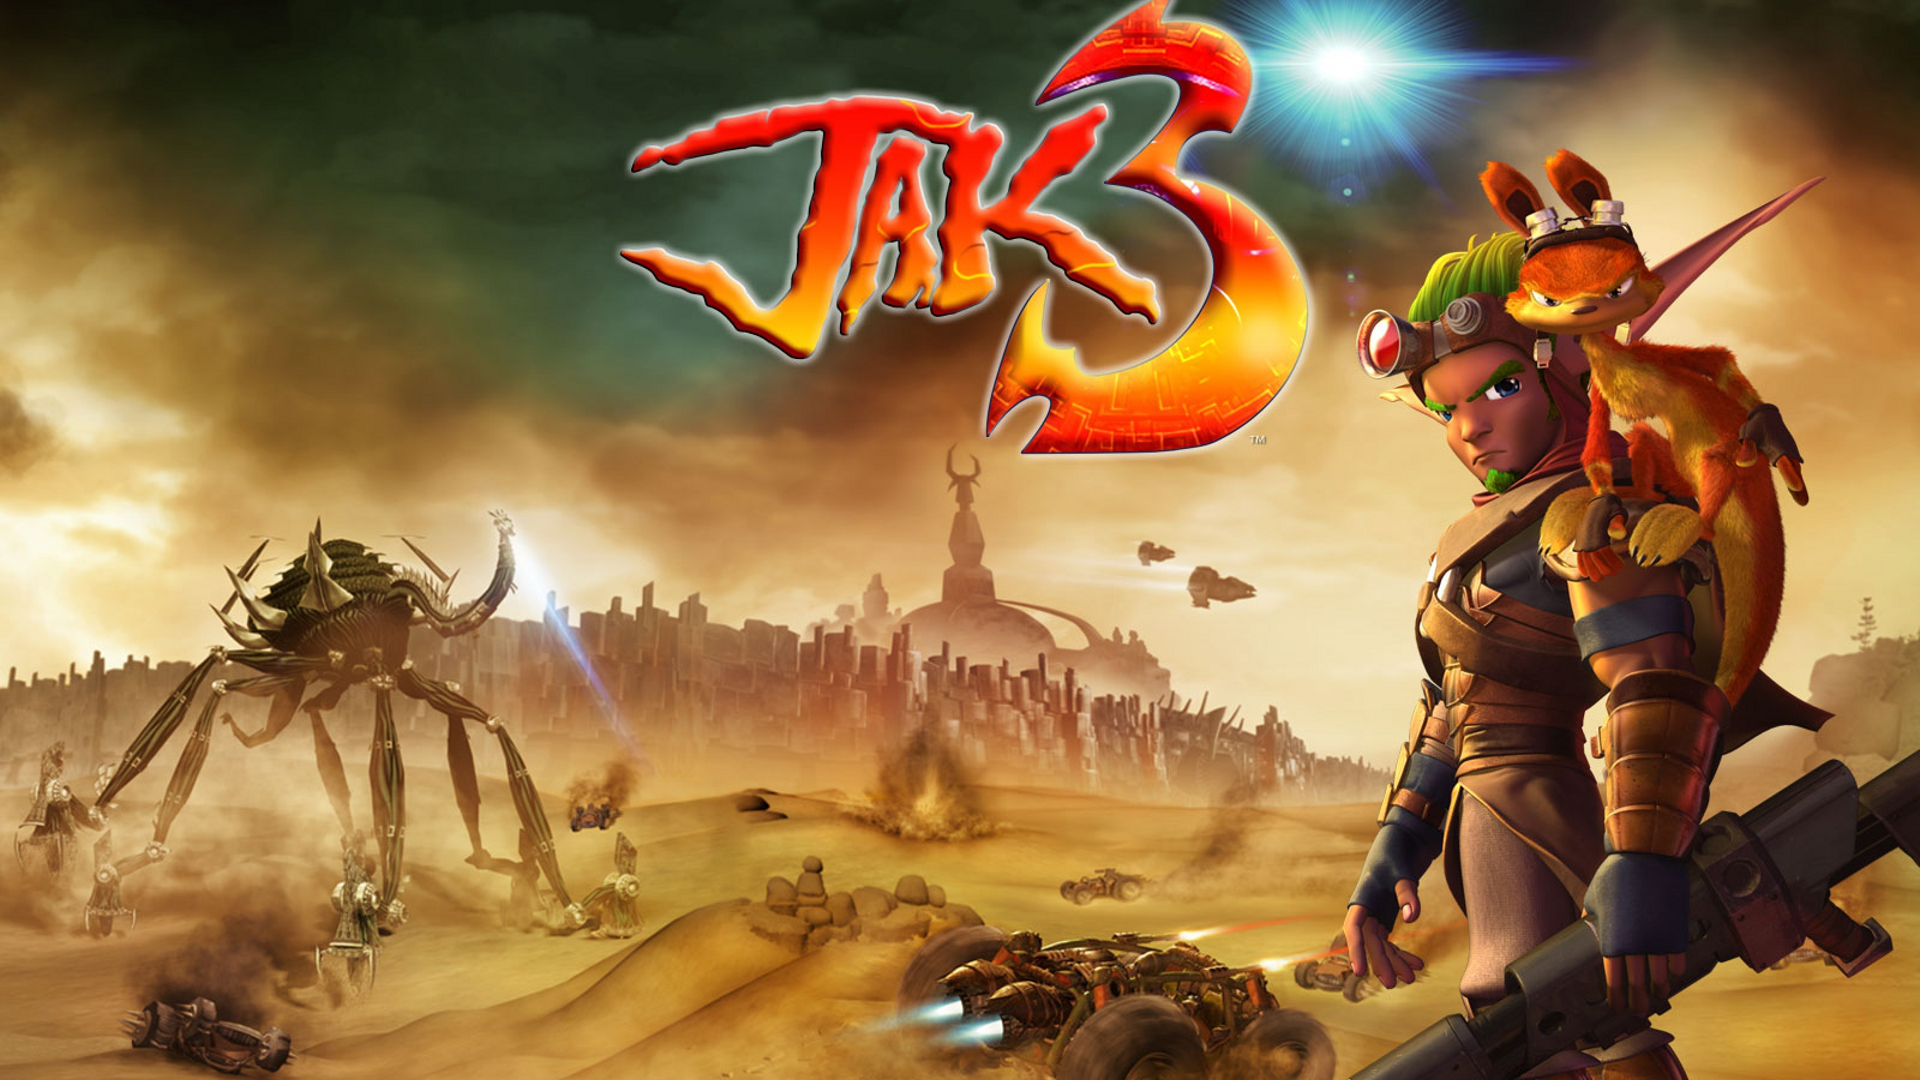 Jak And Daxter Wallpaper: Background Images - Wallpaper Abyss